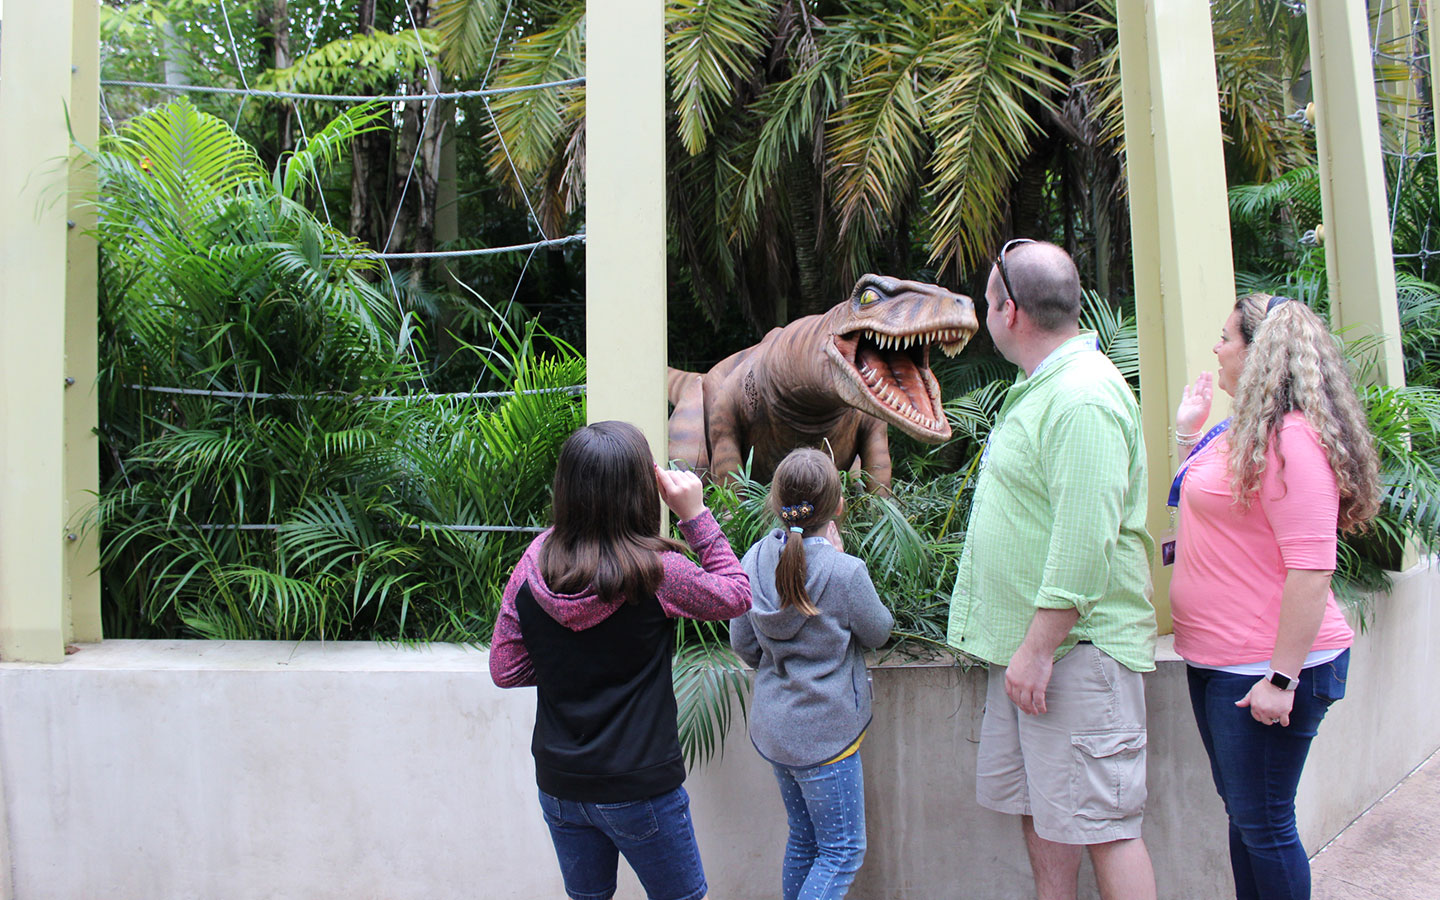 Come face-to-face with a raptor at The Raptor Encounter in Universal's Islands of Adventure